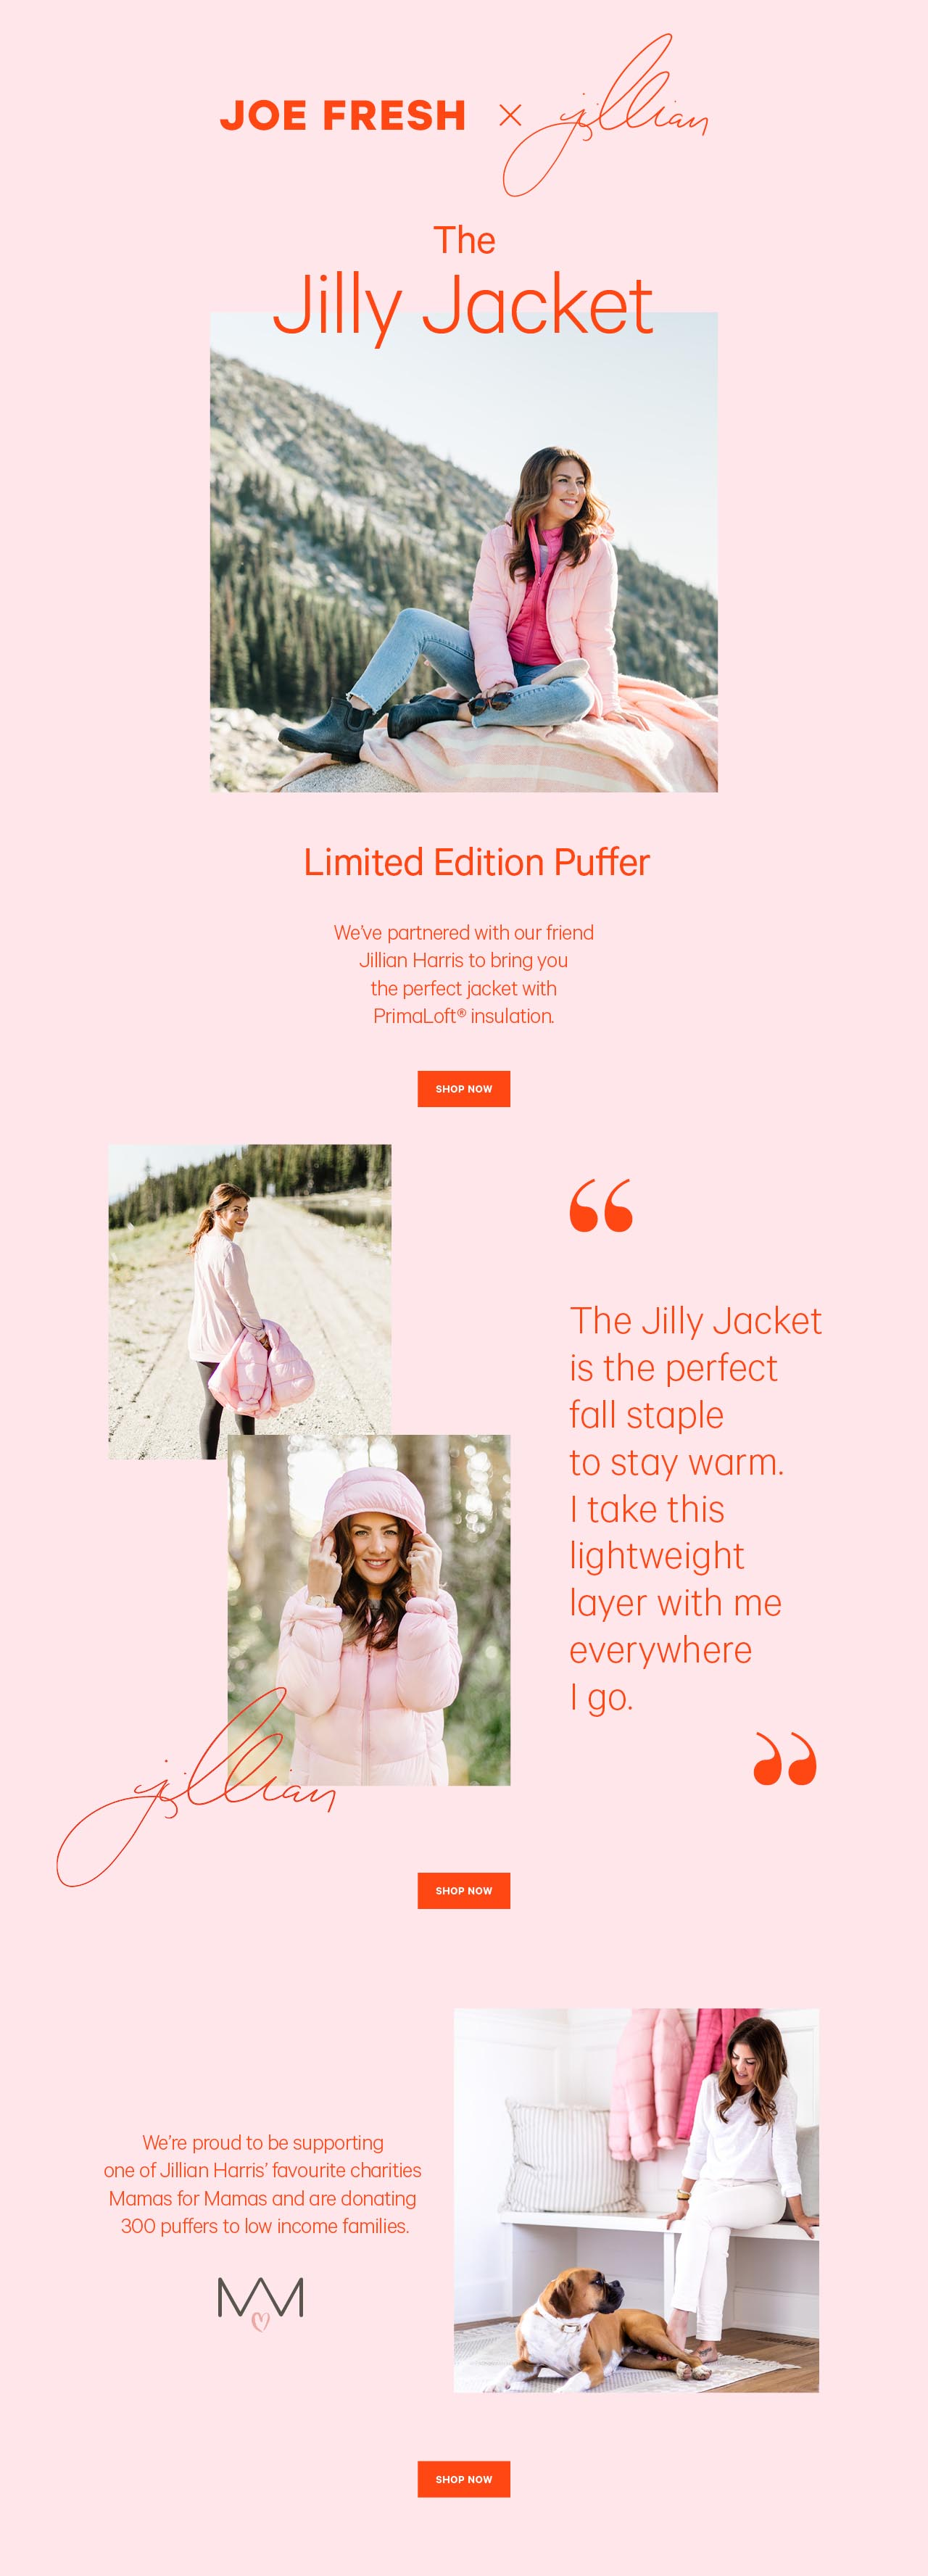 The new jillian harris jacket. Go to: Jilly Jacket